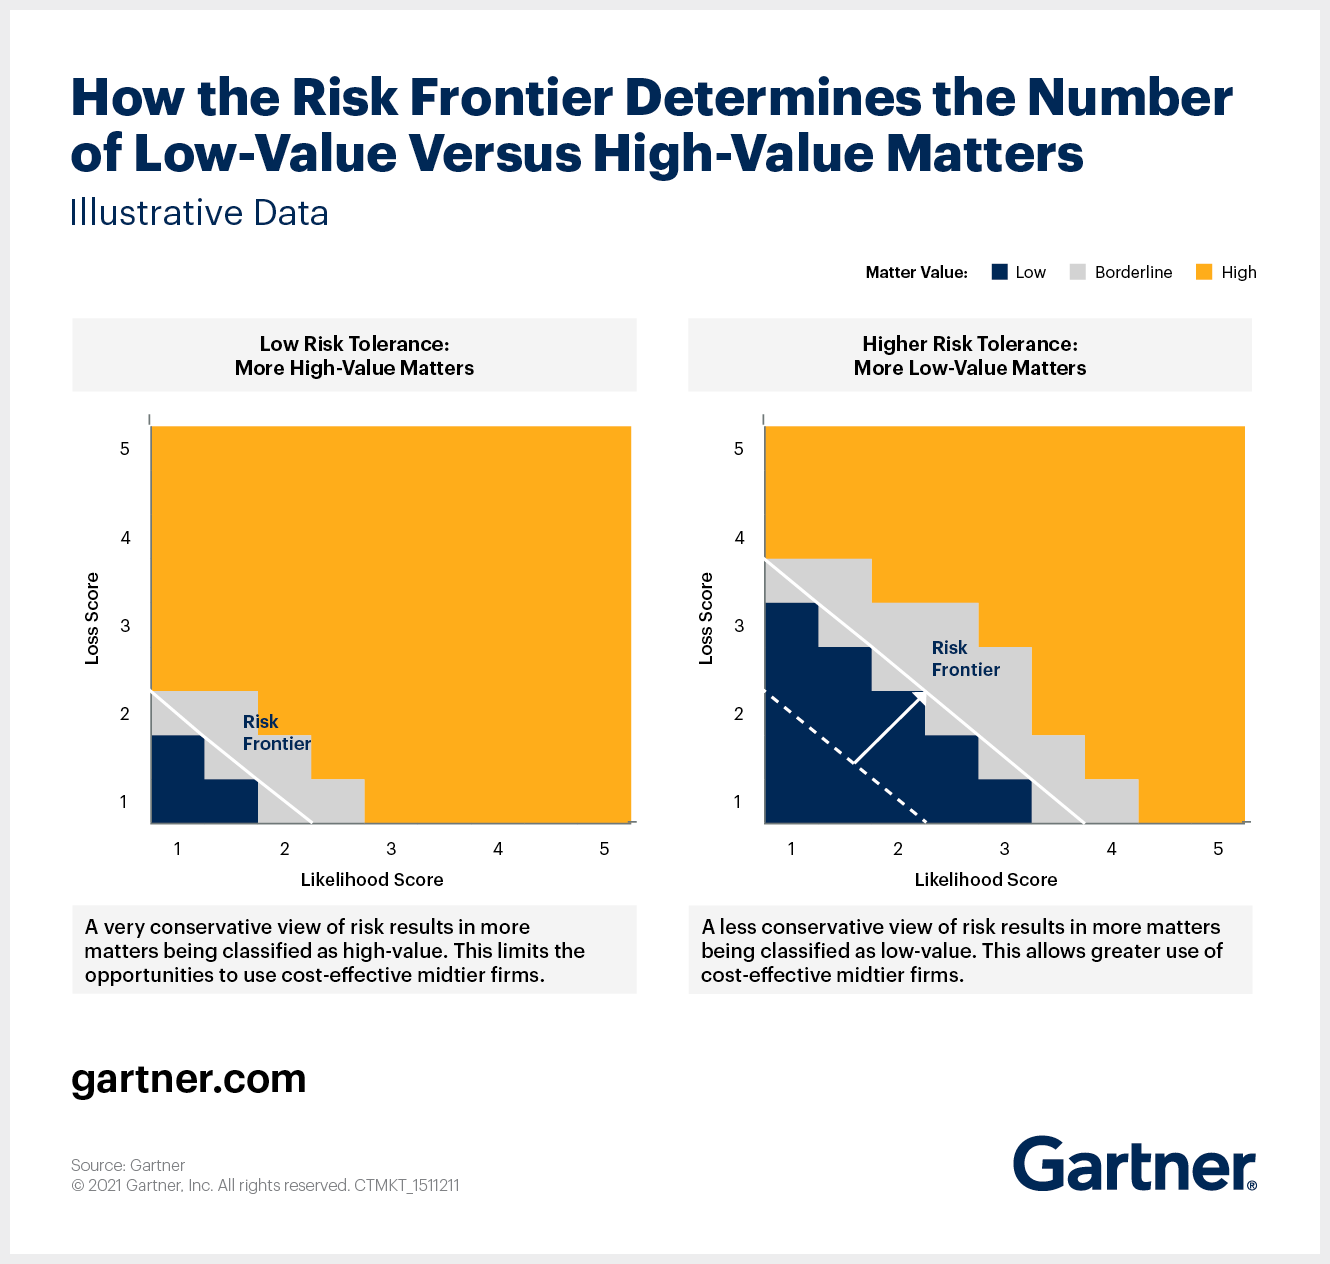 How the Risk Frontier Determines the Number of Low-Value Versus High-Value Matters